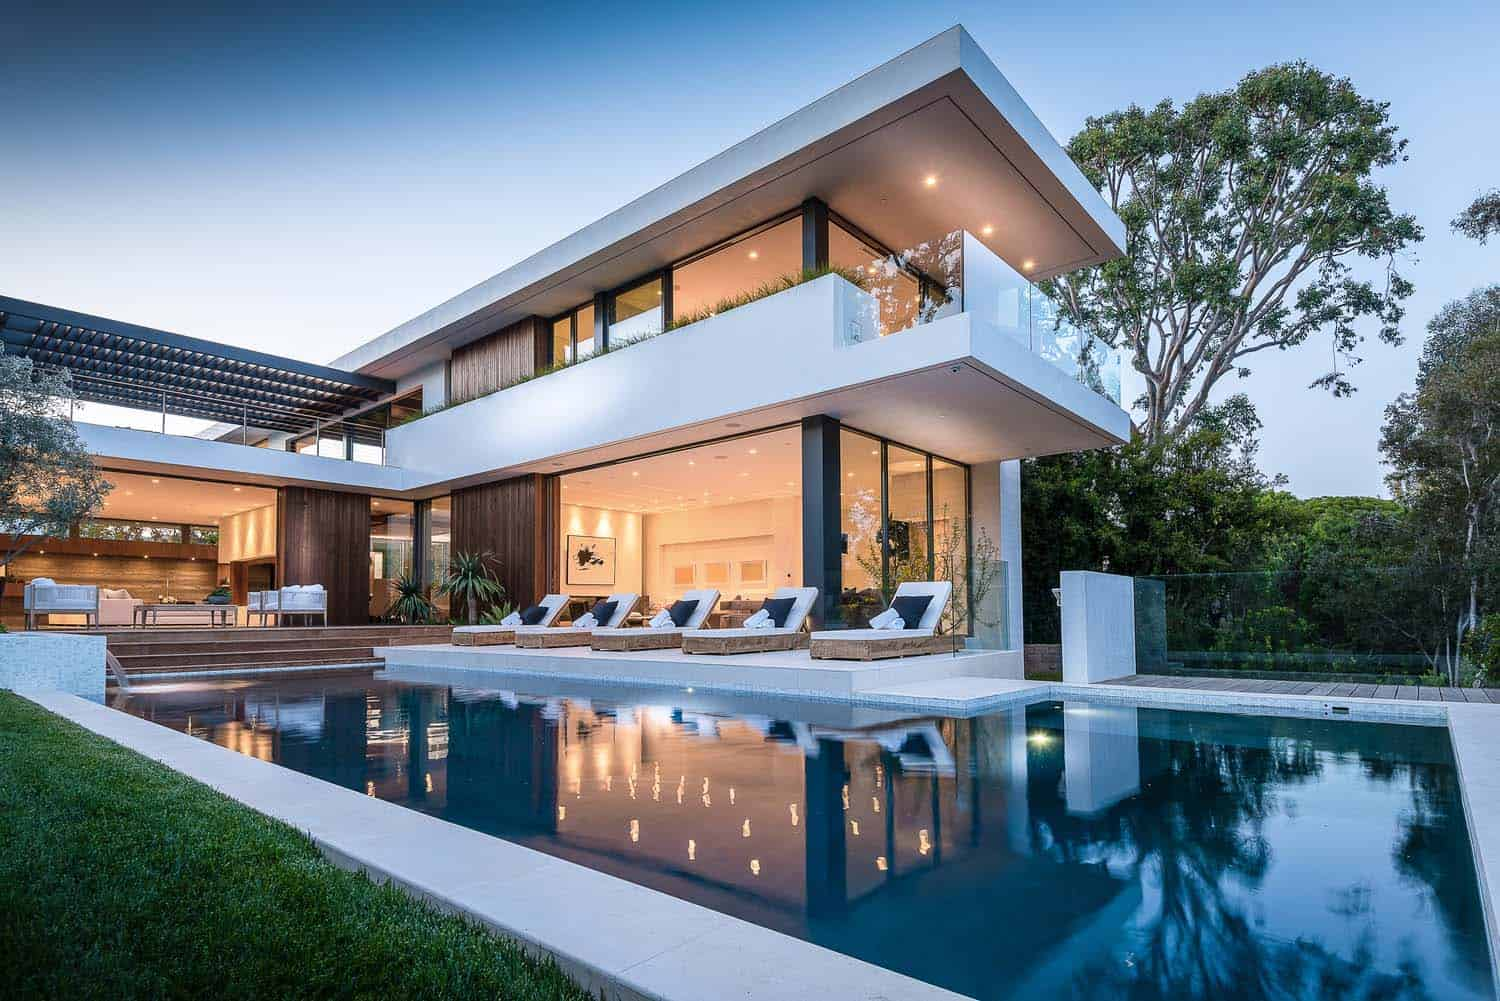 Modernist villa offers impressive architectural details in Pacific Palisades